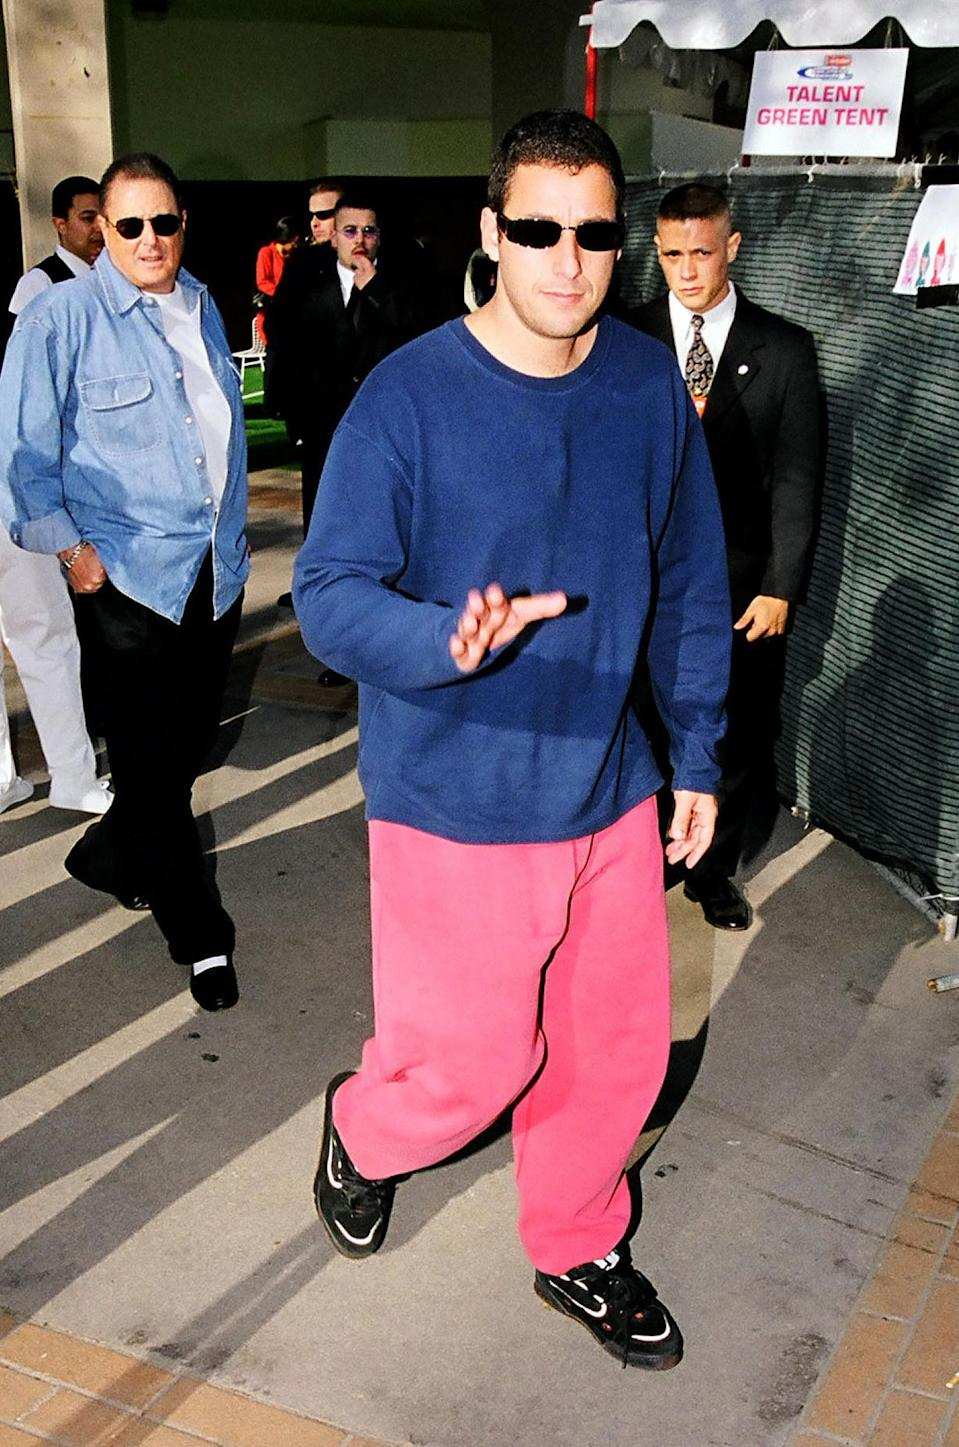 <p>While most celebs get gussied up for awards shows, Adam Sandler keeps it casual. He hit the 1999 Kids' Choice Awards in this comfy pink-and-blue sweatsuit combo. (Photo: Jeff Kravitz/FilmMagic)</p>